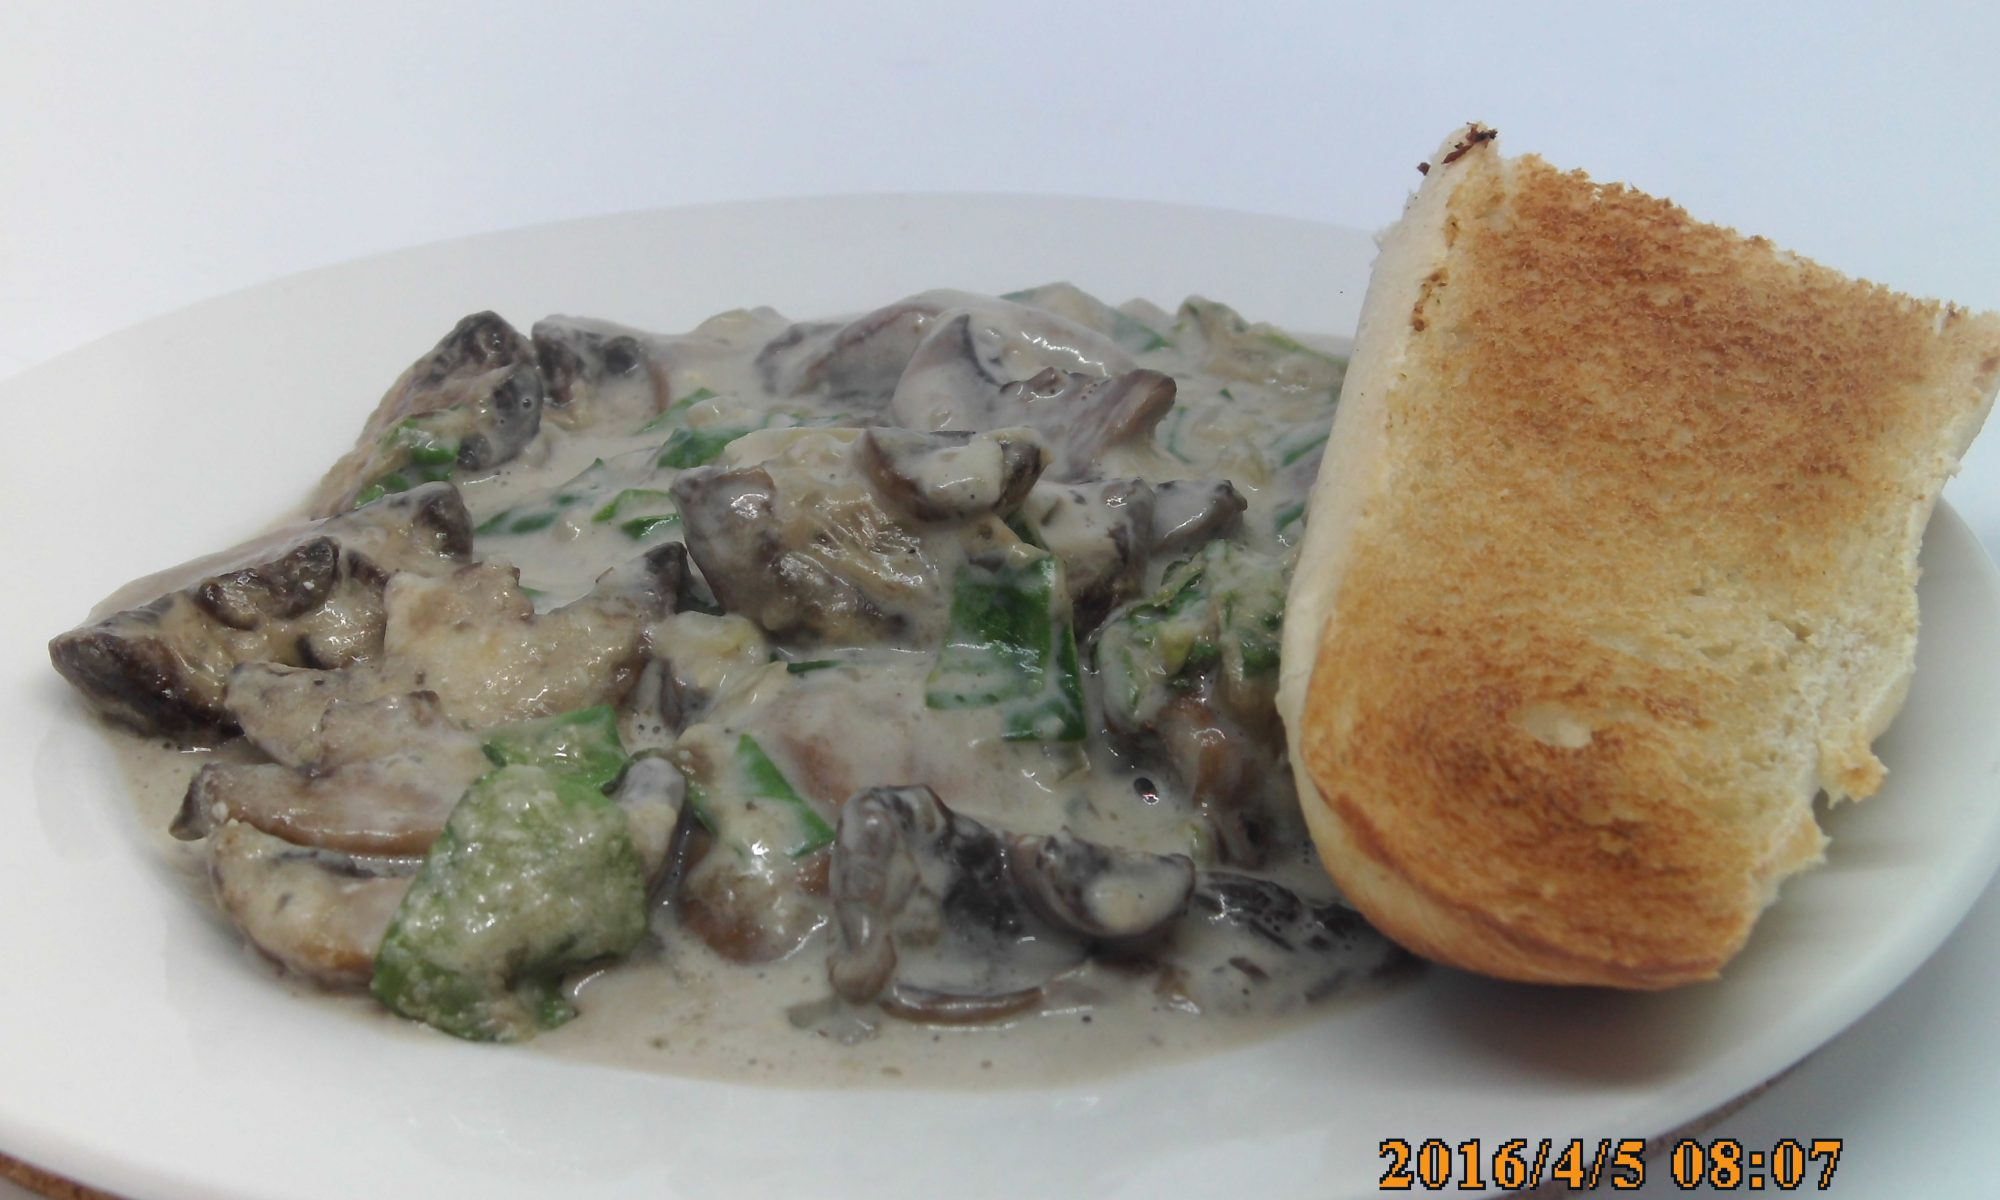 Braised Mushrooms with Mascarpone and Spinach